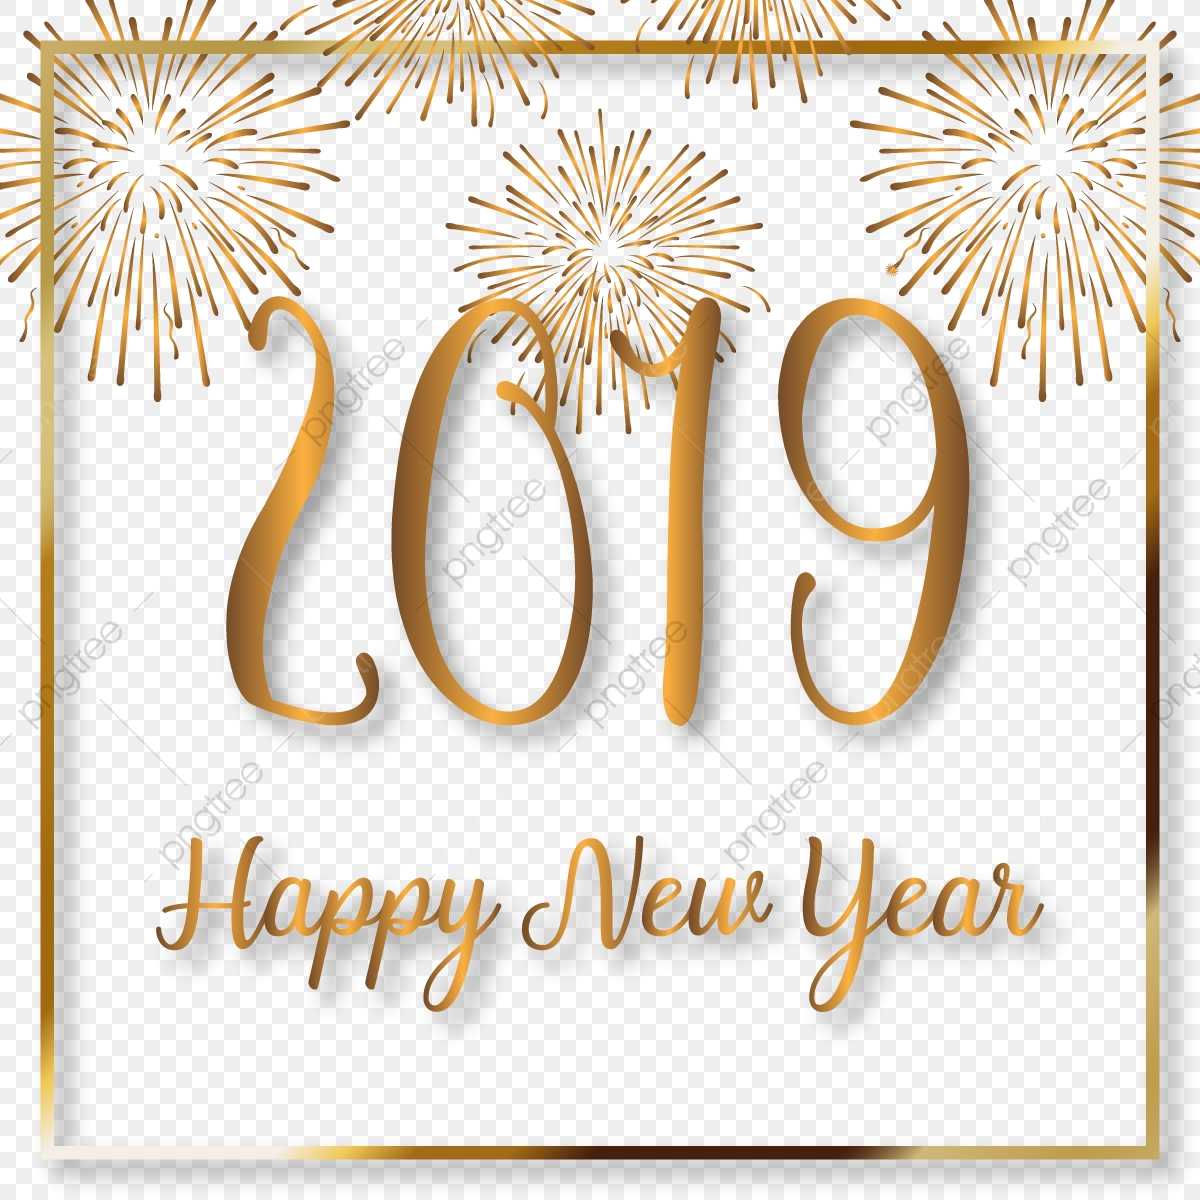 Happy new year photo frame png